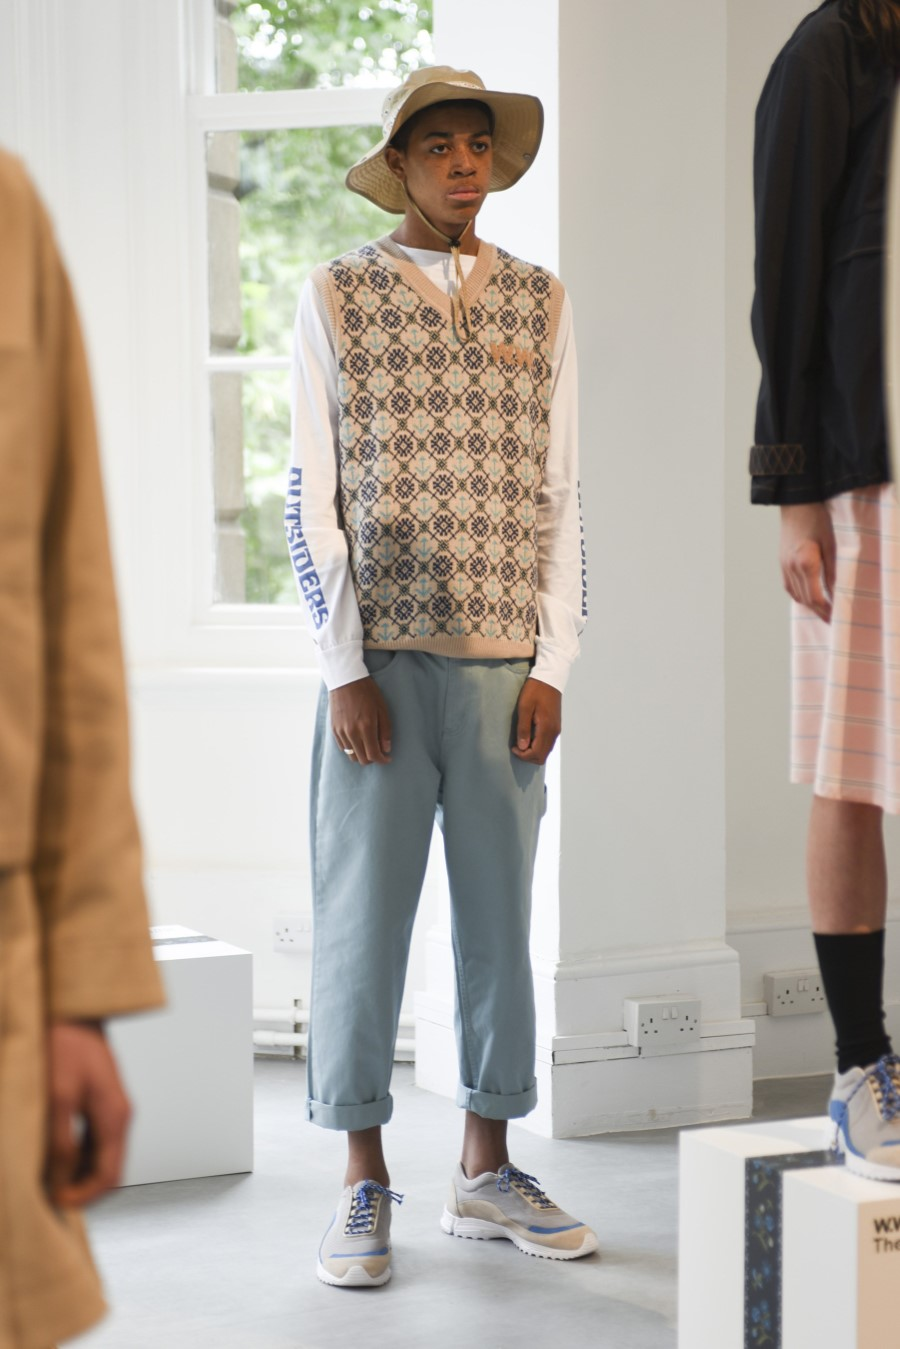 Wood Wood – Printemps/Été 2019 – London Fashion Week Men's